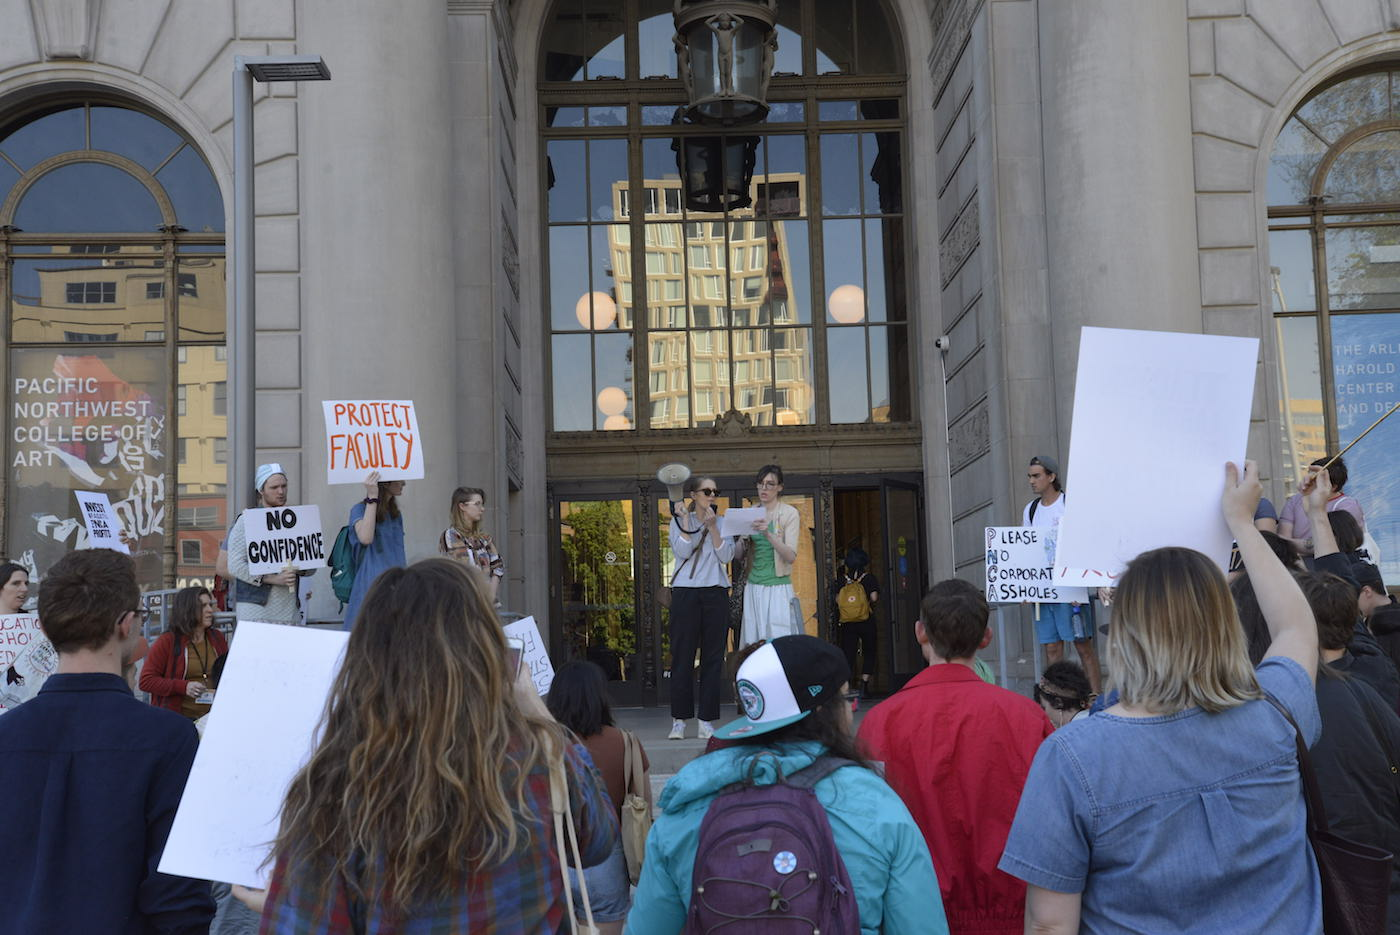 Students and faculty protesting at the main entrance to Pacific Northwest College of Art in Portland, Oregon (all photos by and courtesy Christine Taylor)